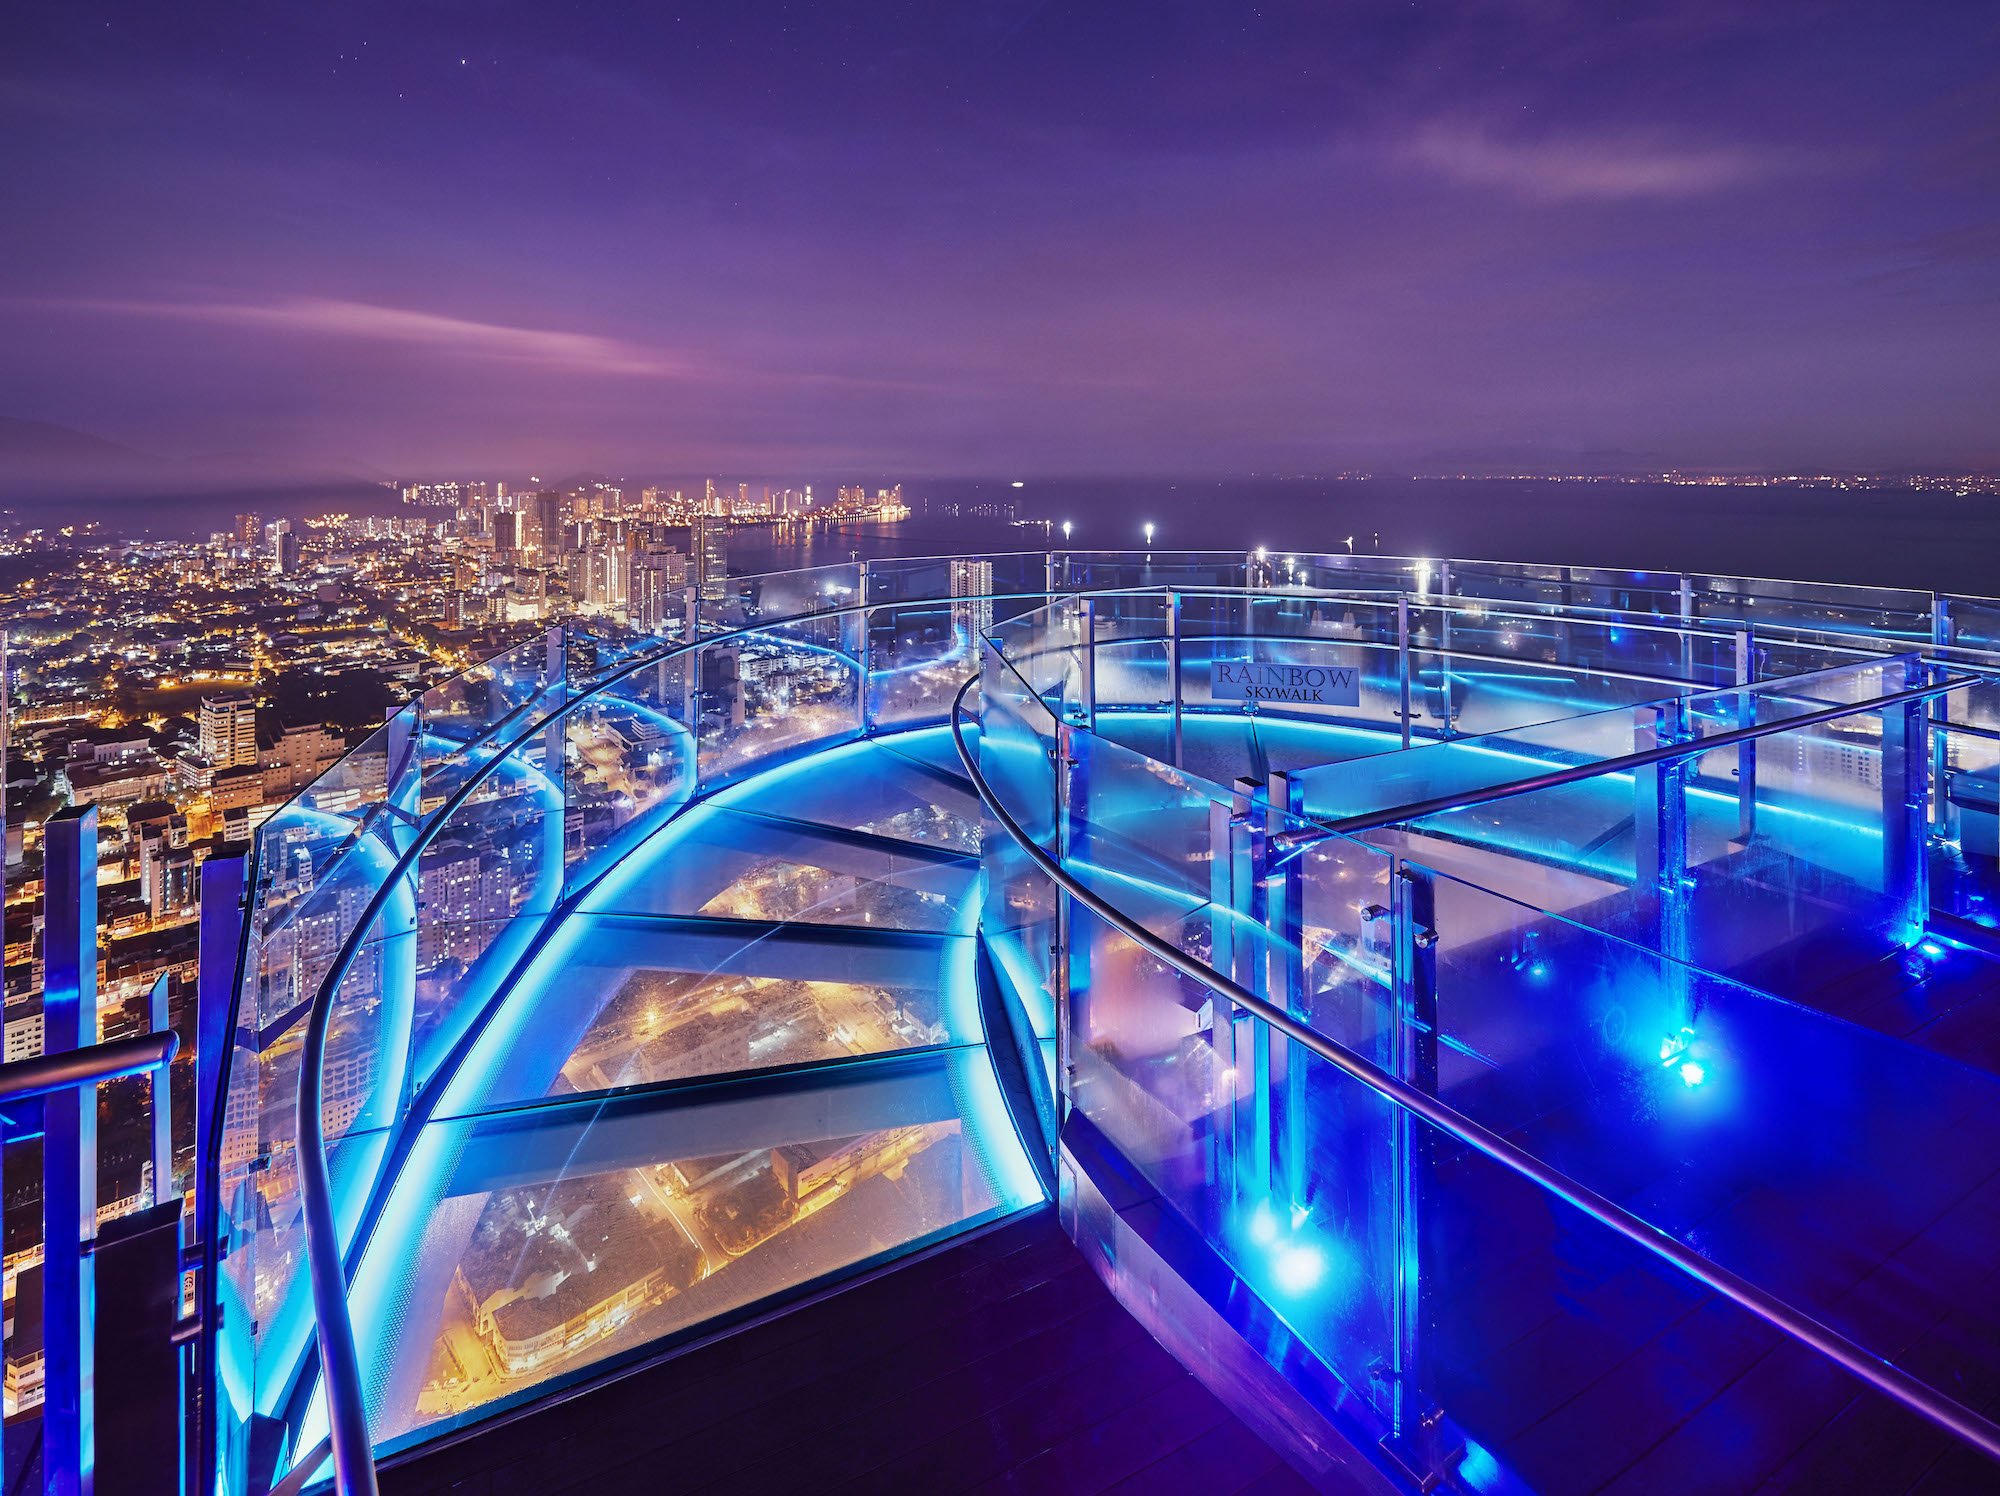 Rainbow Skywalk at night.